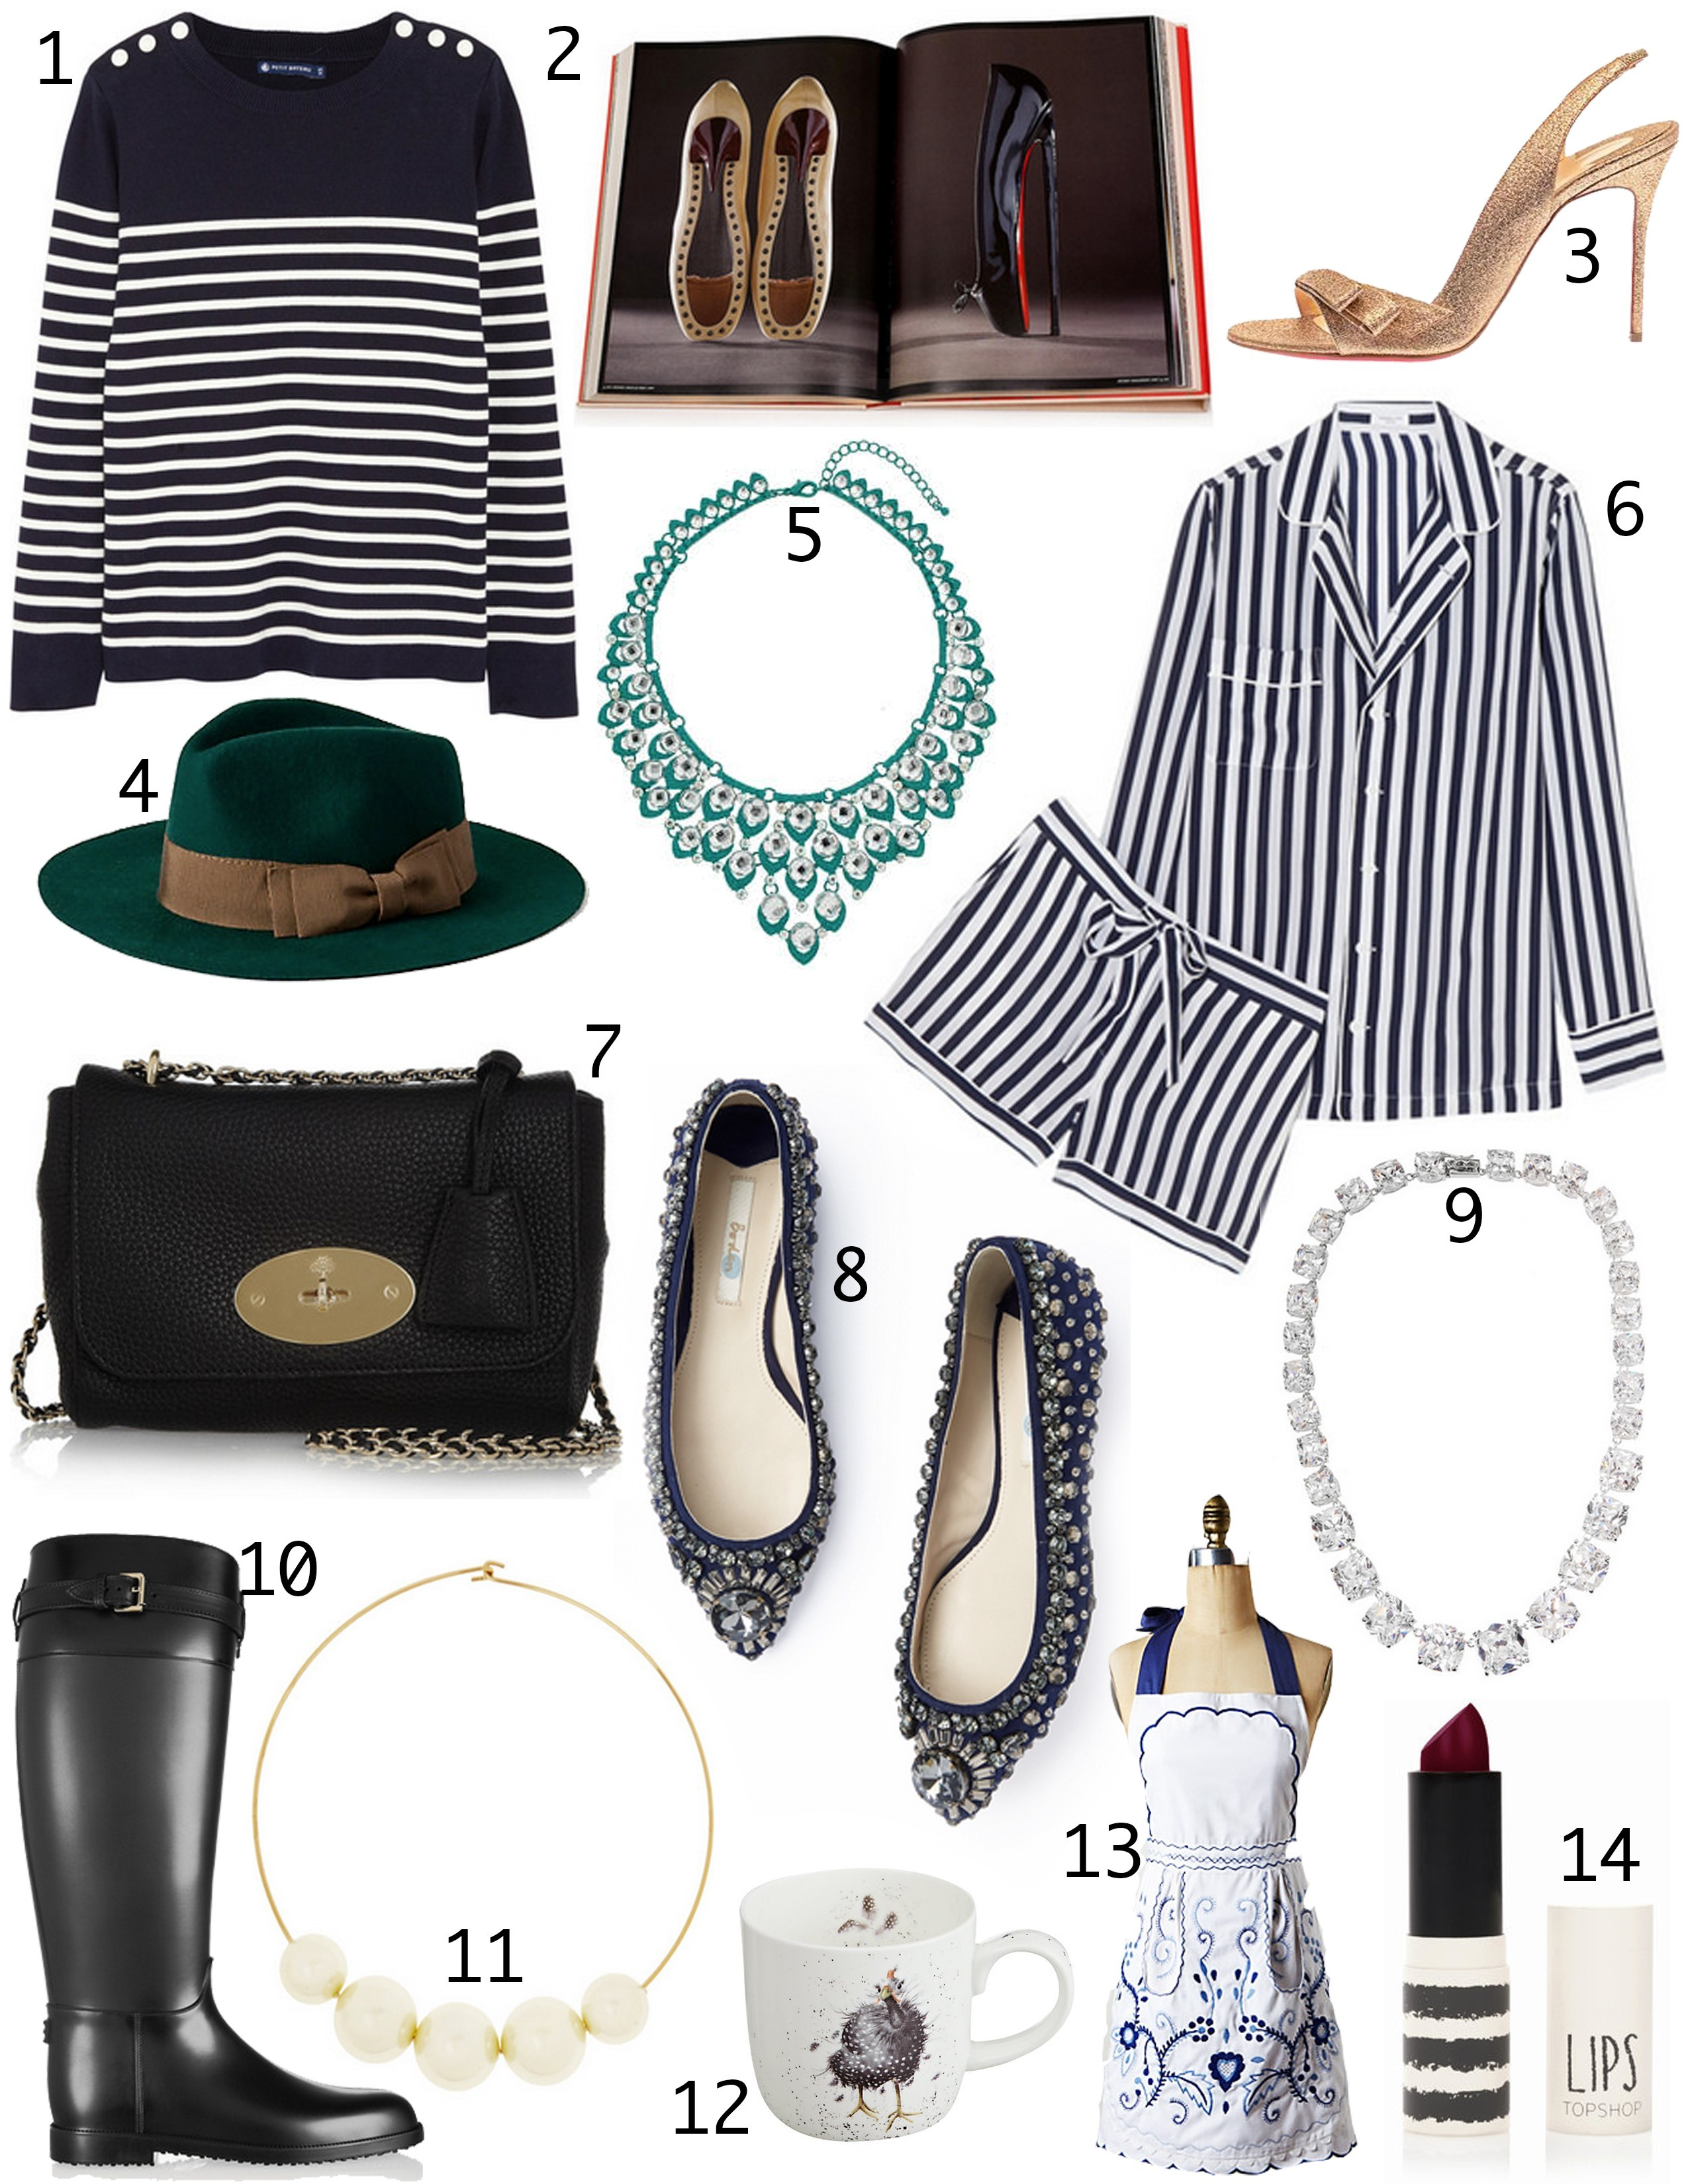 Christmas Gift Guide 2014 - The Londoner